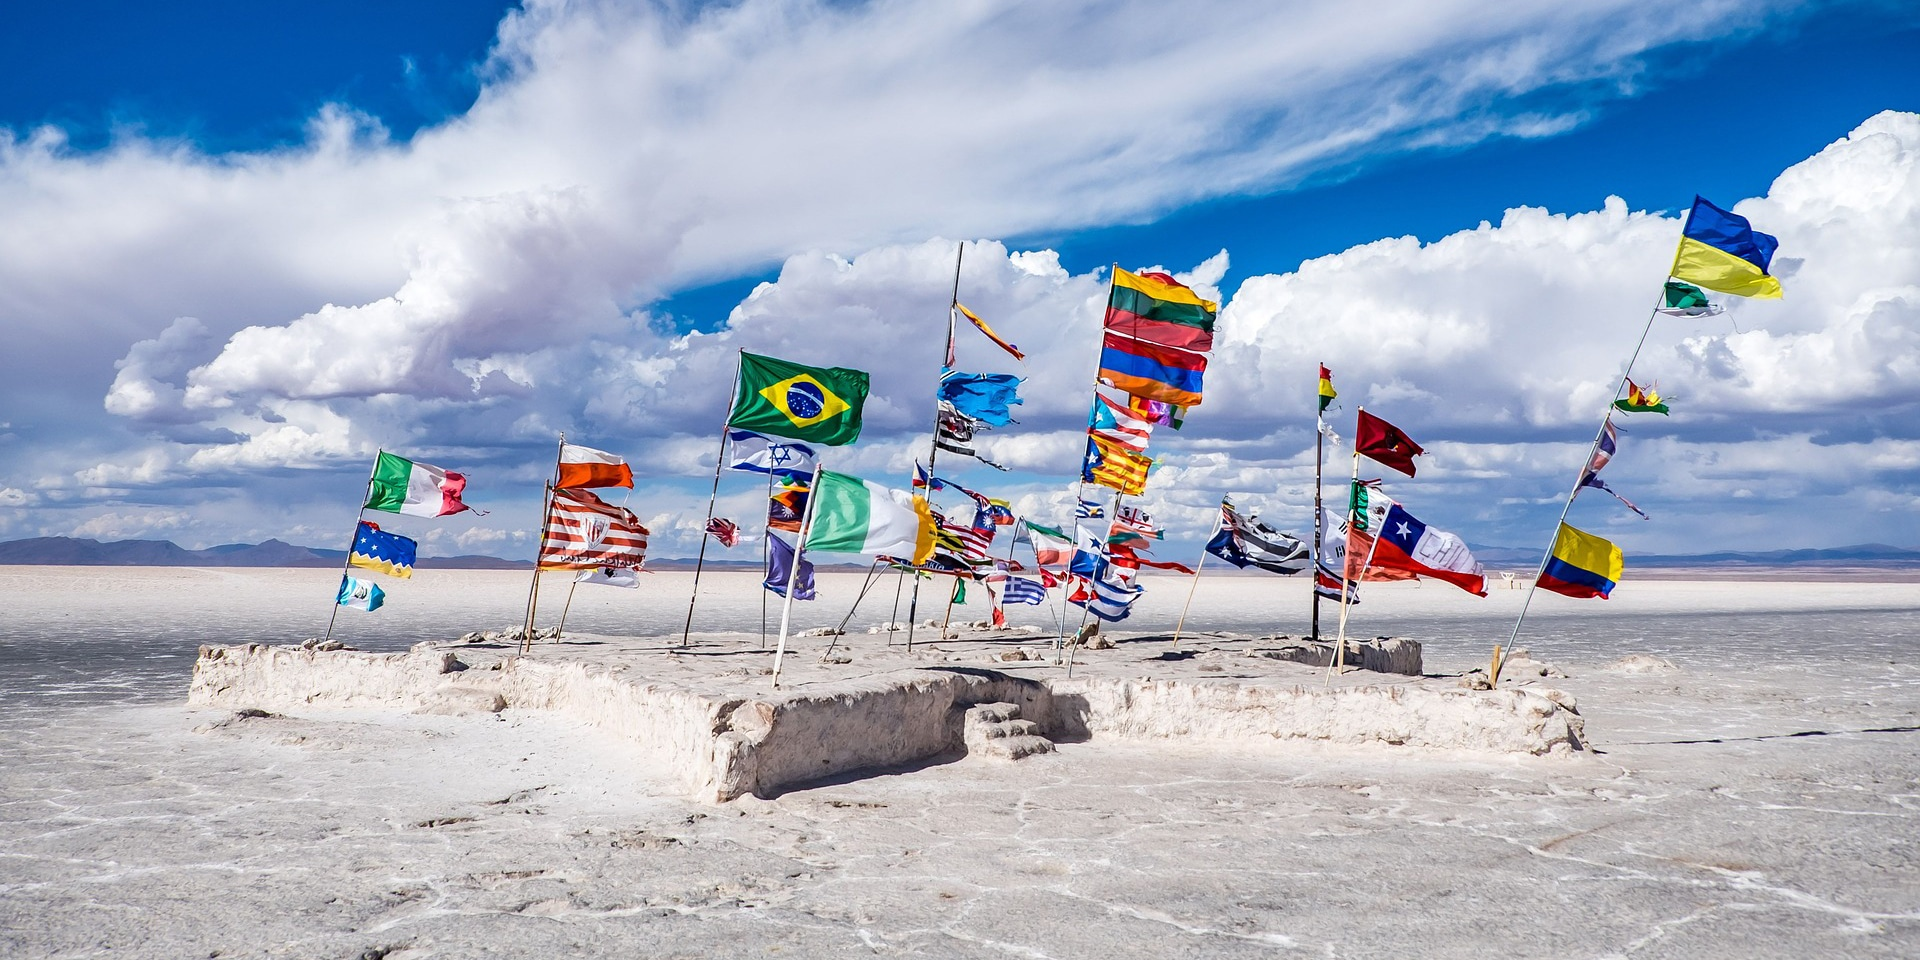 Selection of world flags flap in the wind on the beach against a blue sky